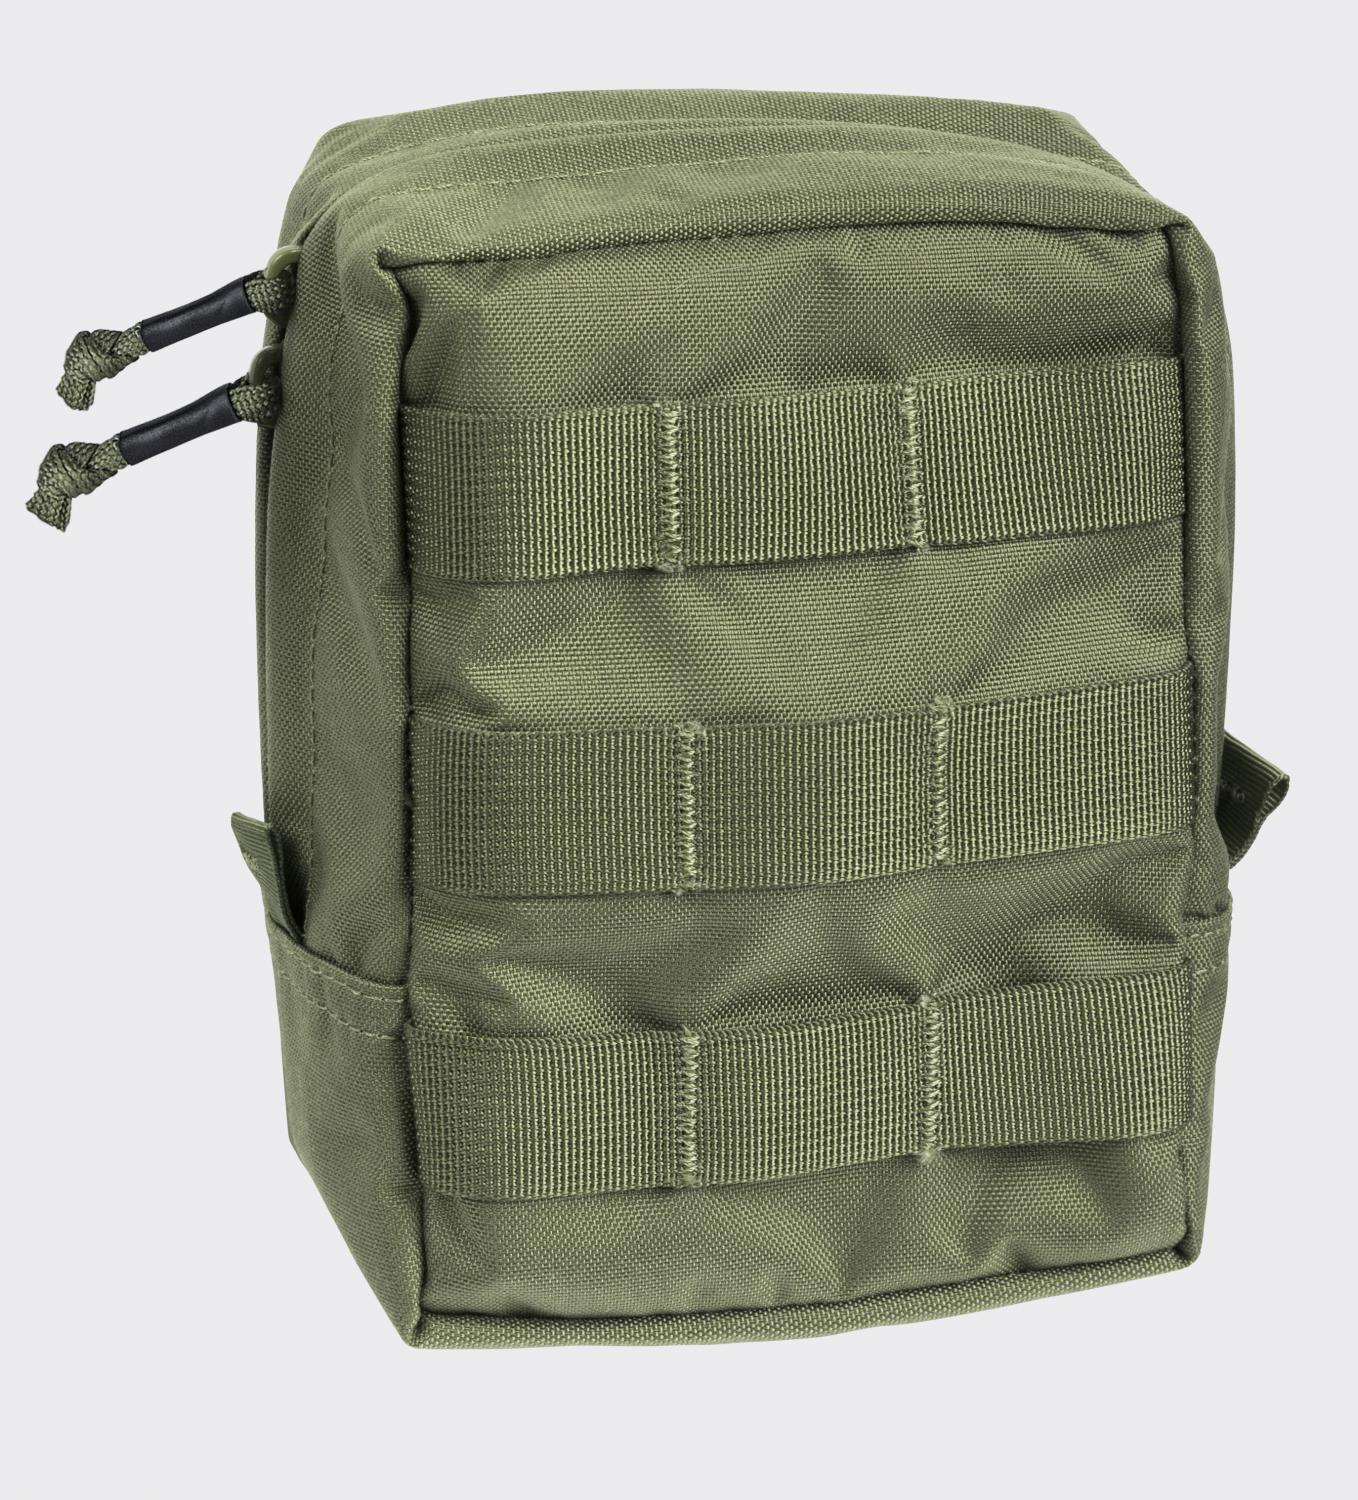 GENERAL PURPOSE CARGO® Pouch [U.05] - Cordura Olive Green